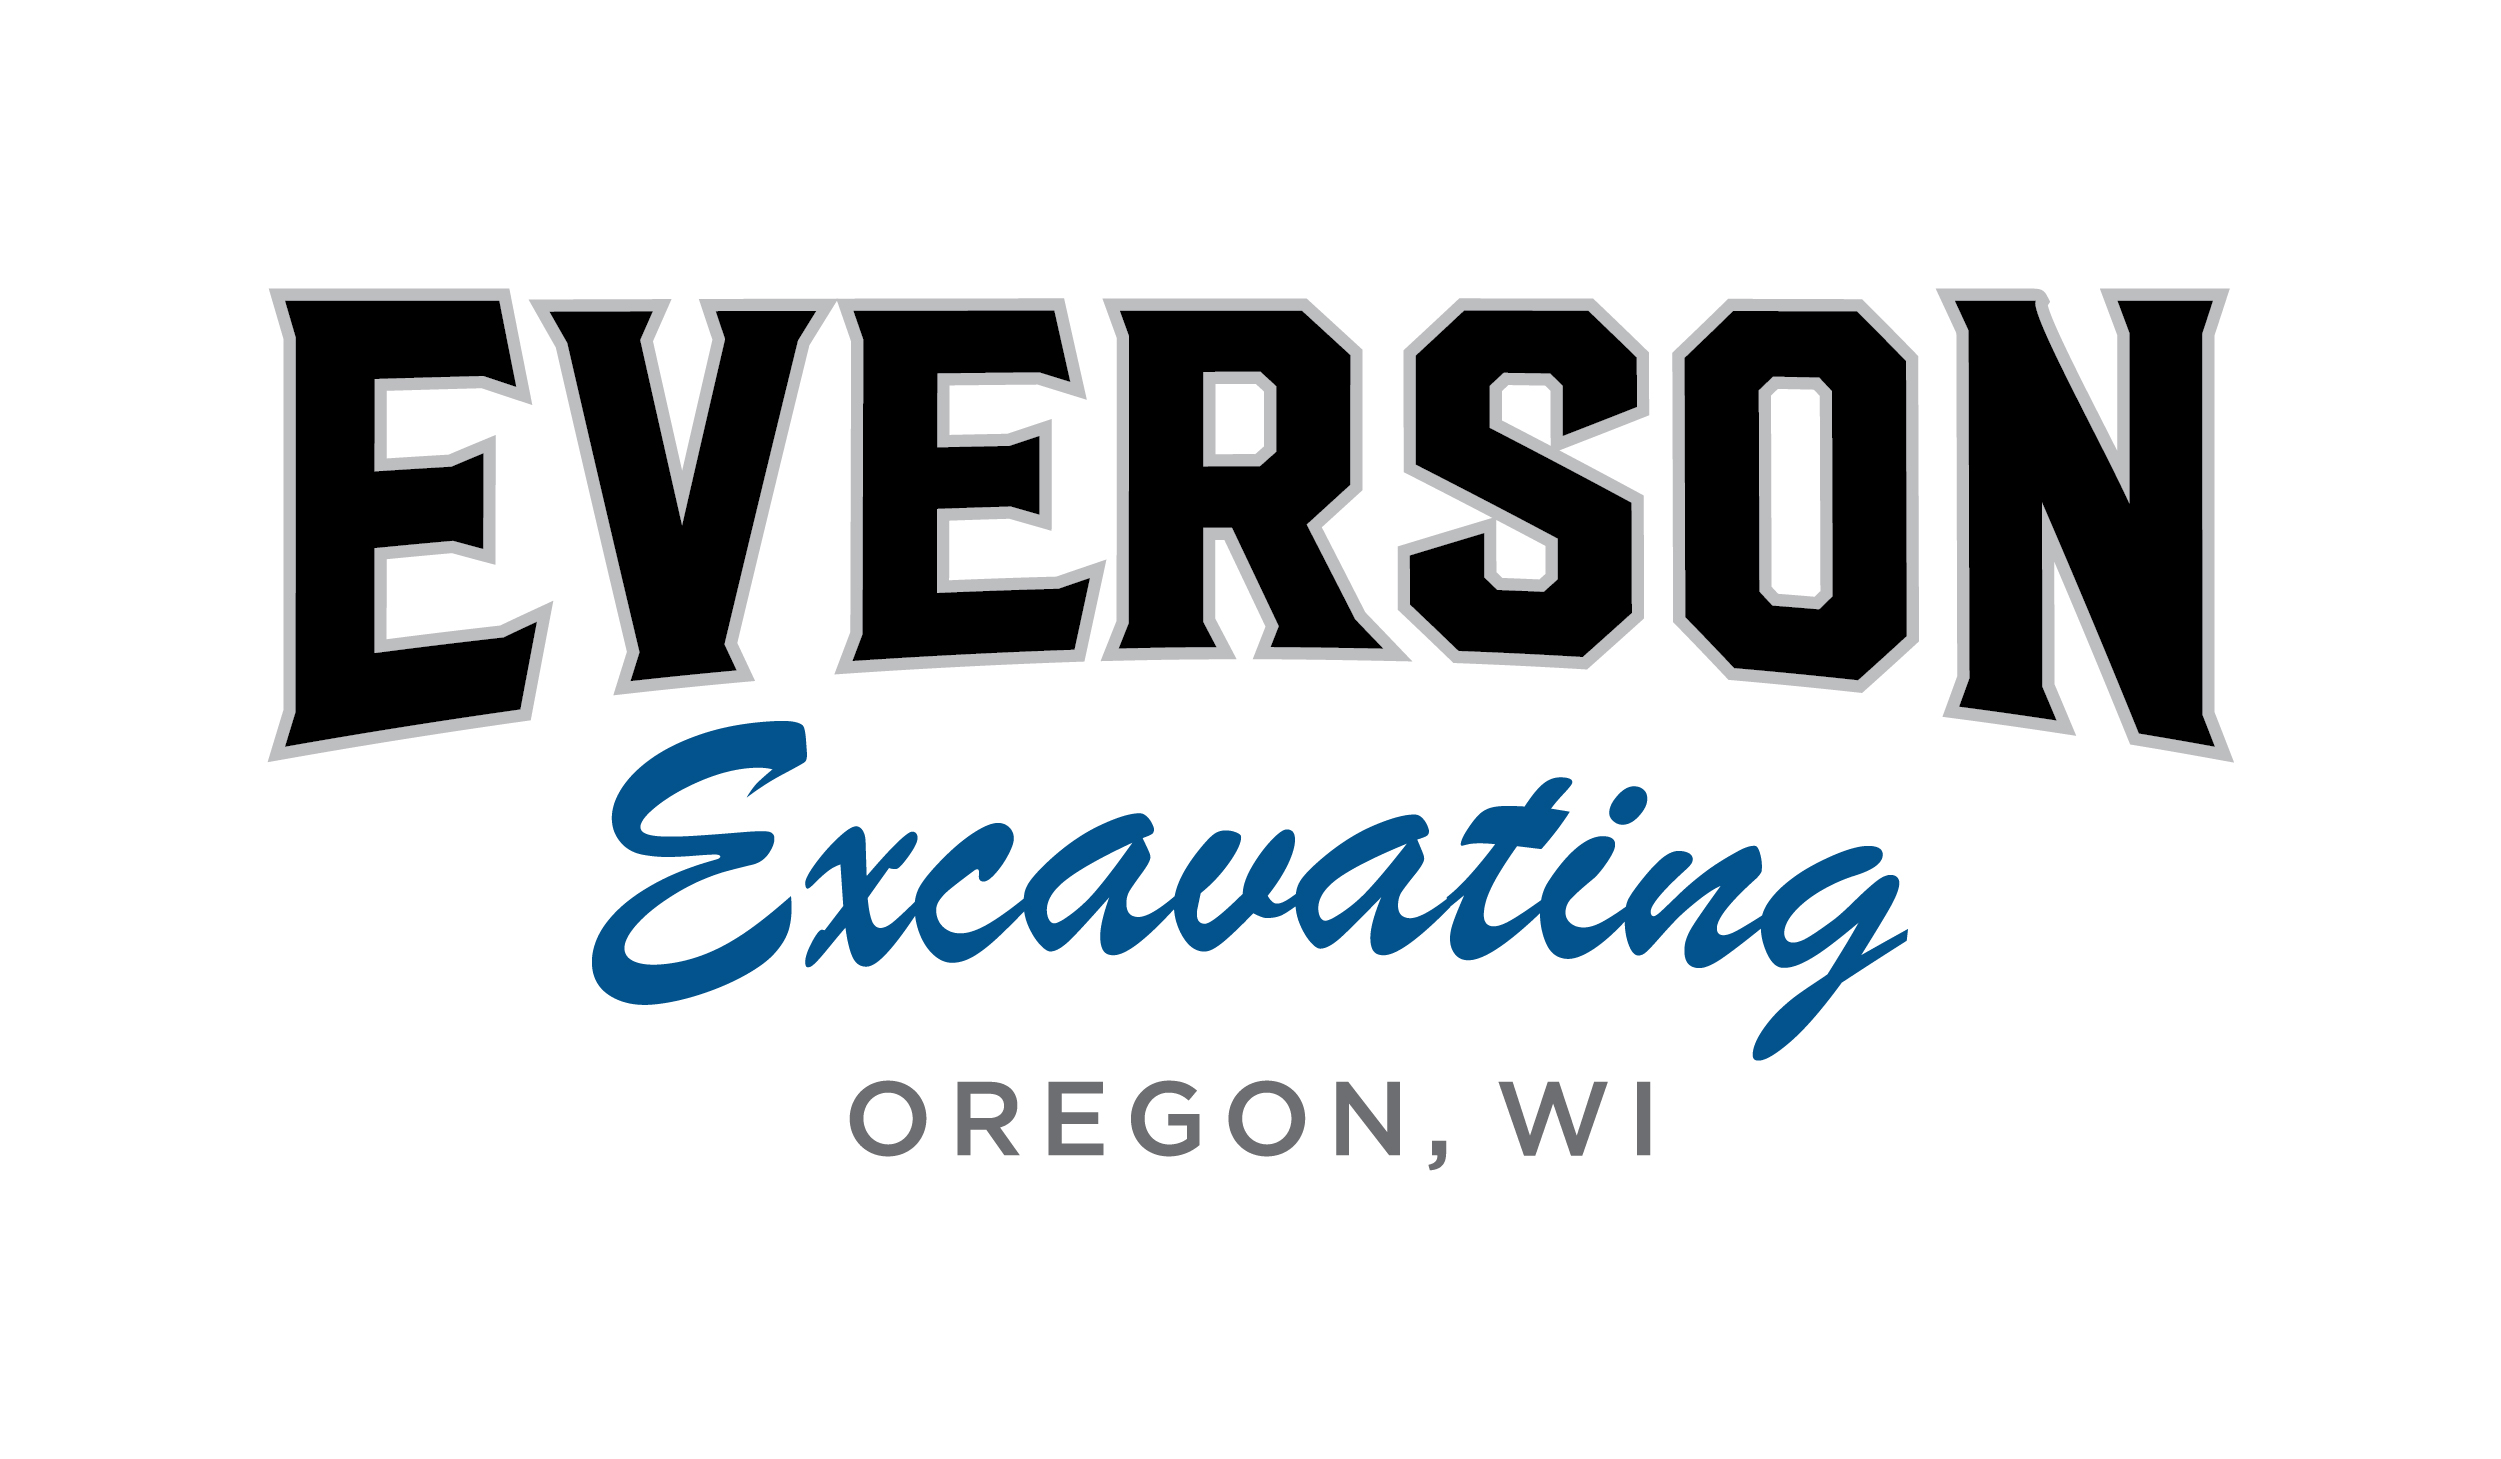 Everson Excavating